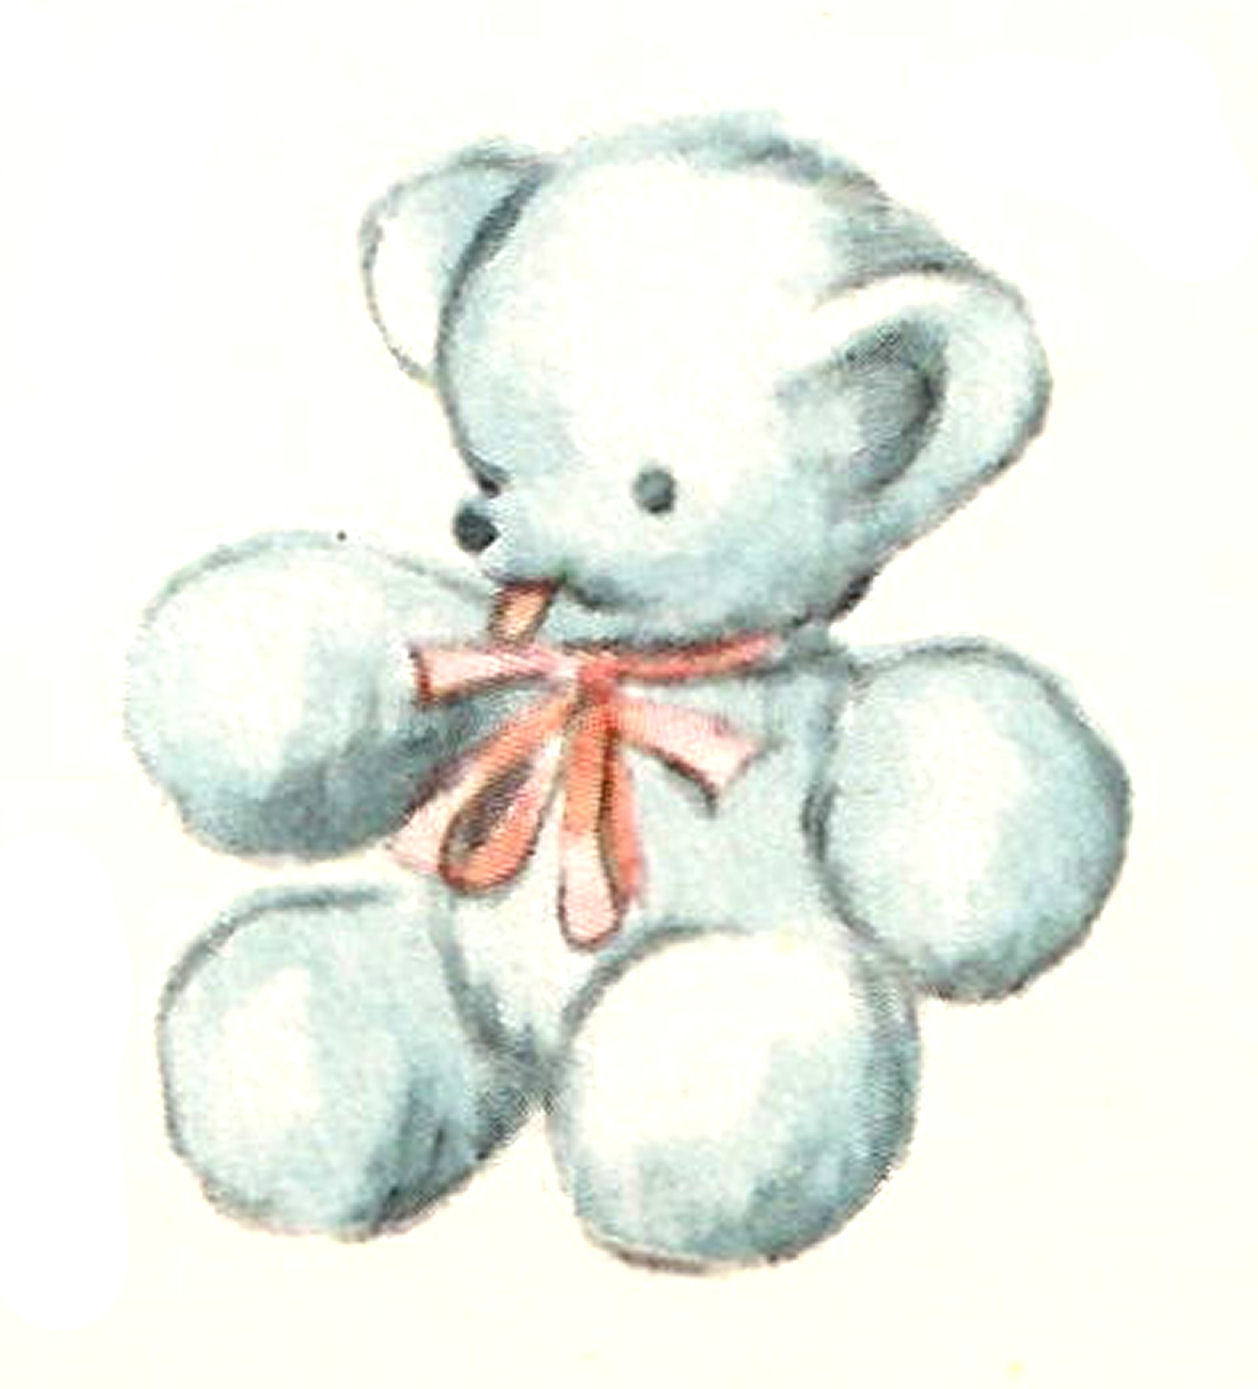 Antique Images Blue Teddy Bear Baby Toy Digital